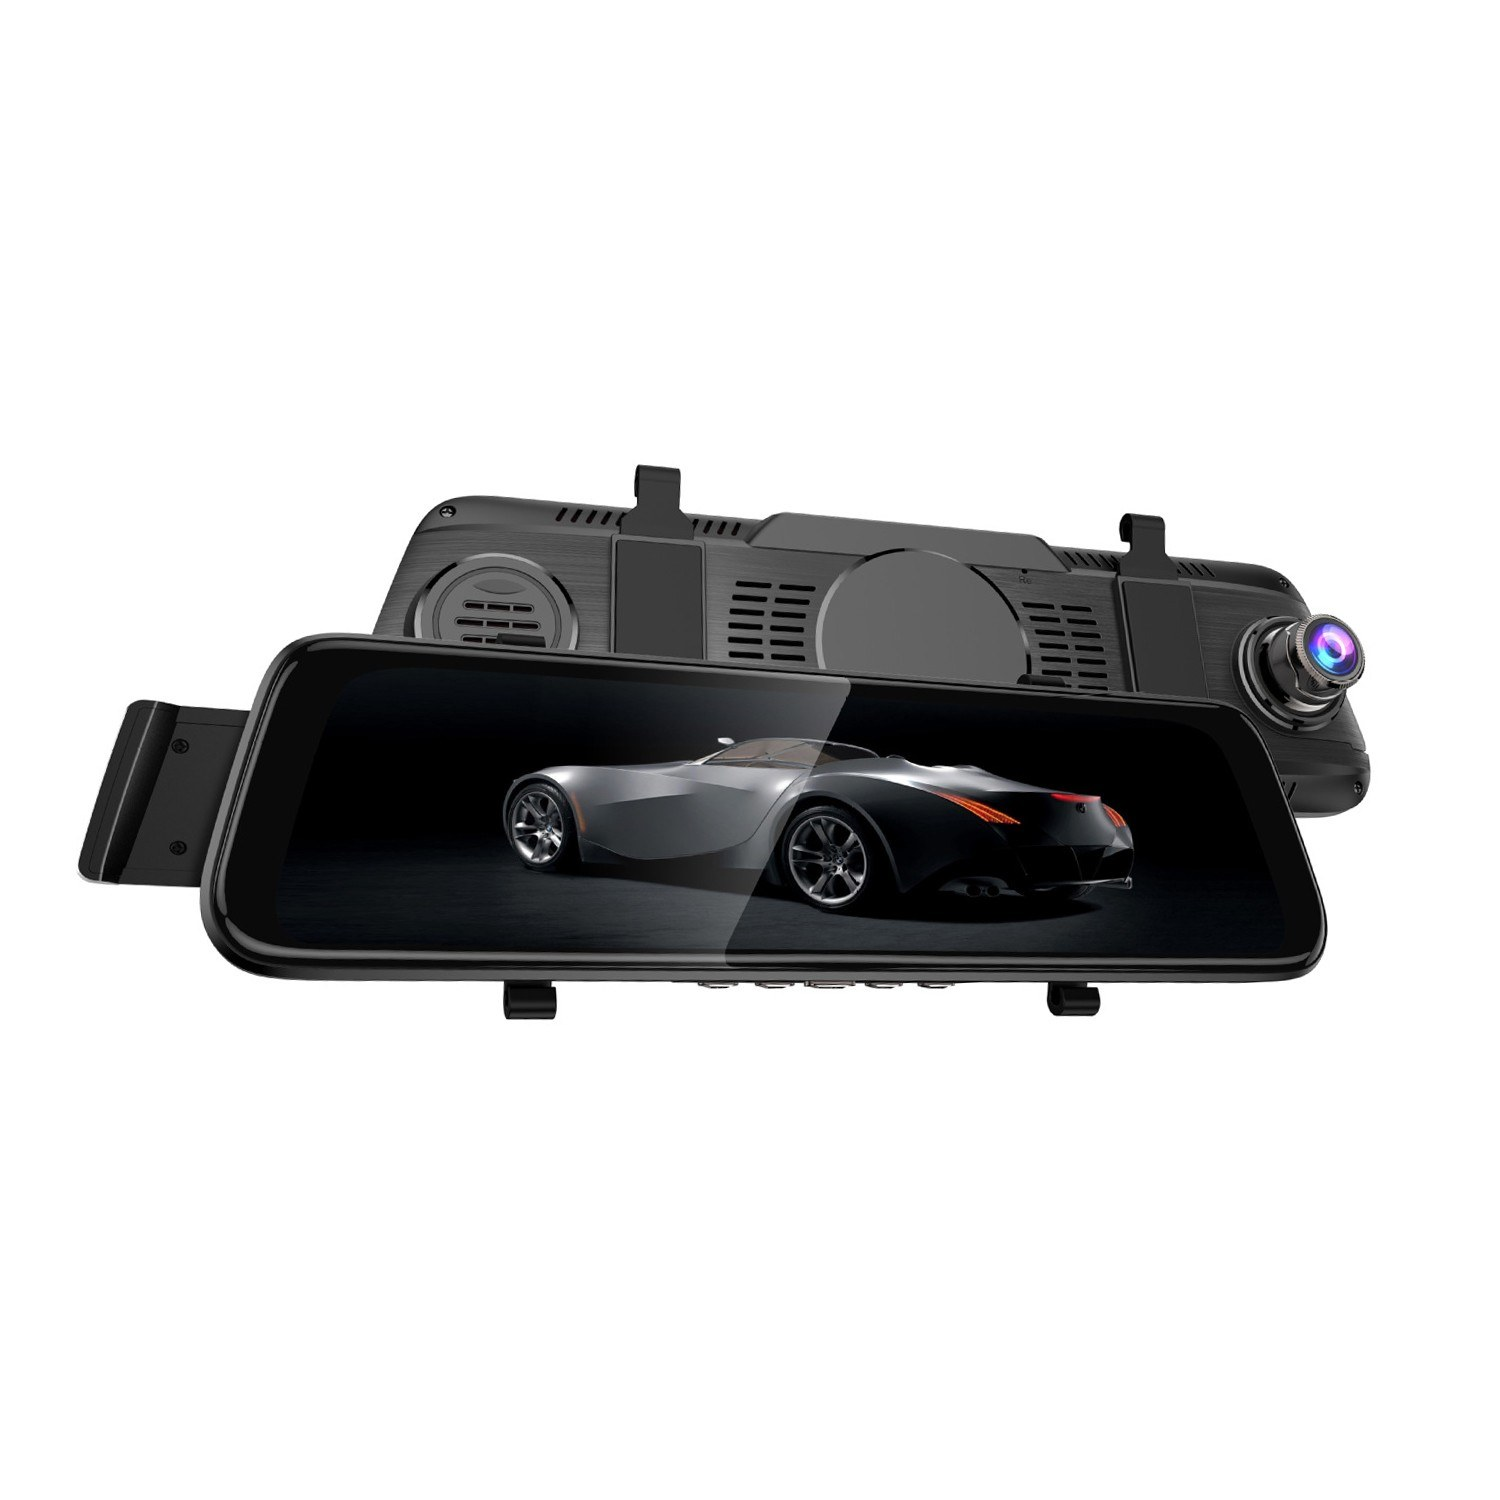 10'' Double Lens Wide Angle Car Mirror Dash Came Multimedia Full Touch Screen DVR Rearview Camera Streaming Video Recorder 1080P External GPS with G-sensor Motion Detection Night